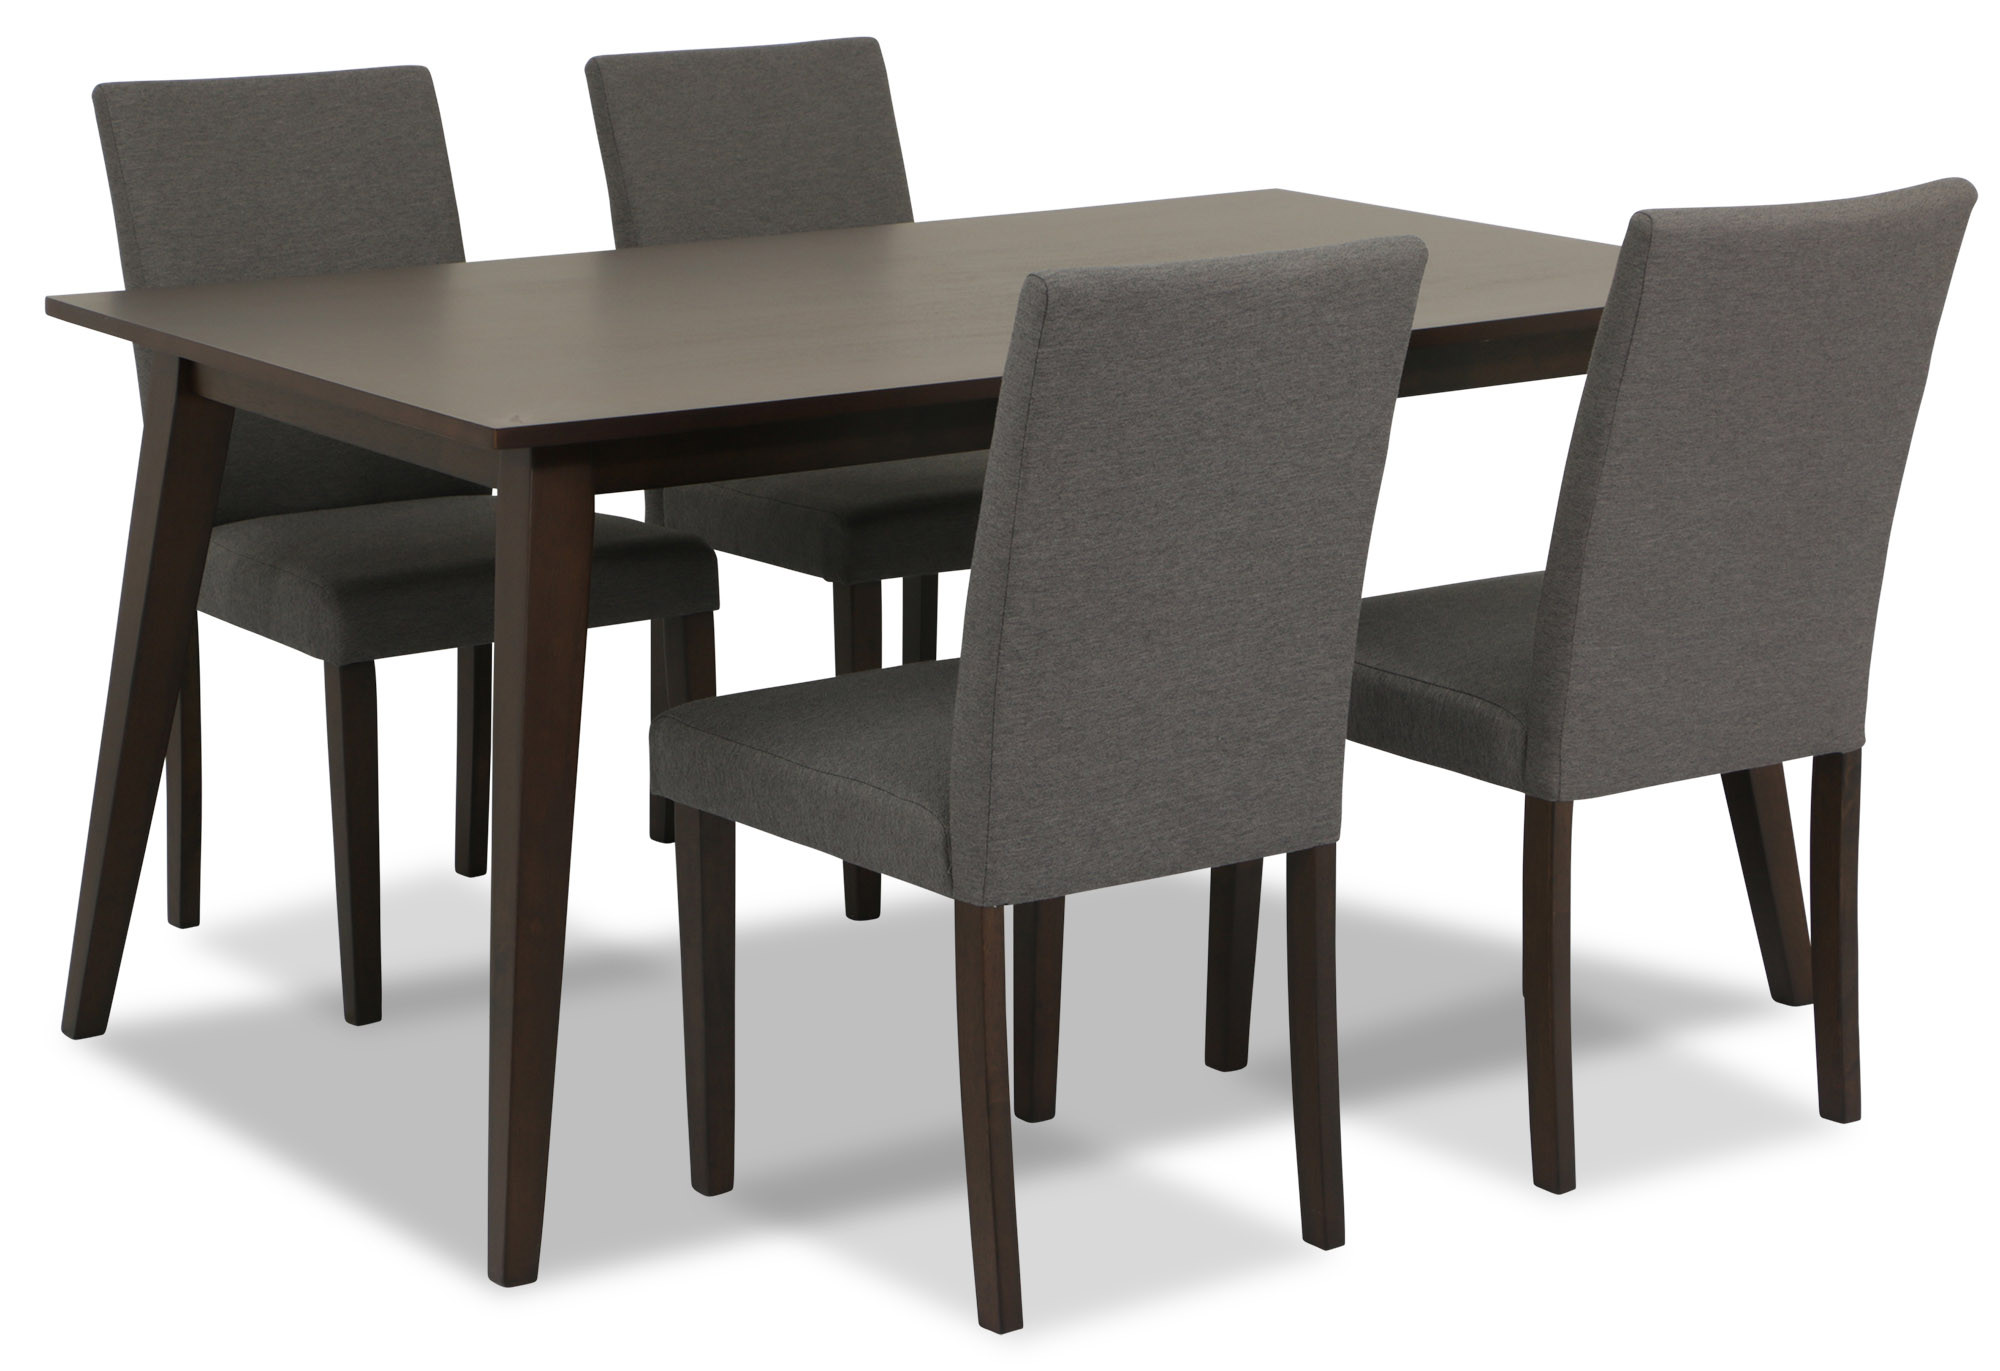 Libby Dining Table Set Wenge 1 6 Furniture Home Decor Fortytwo